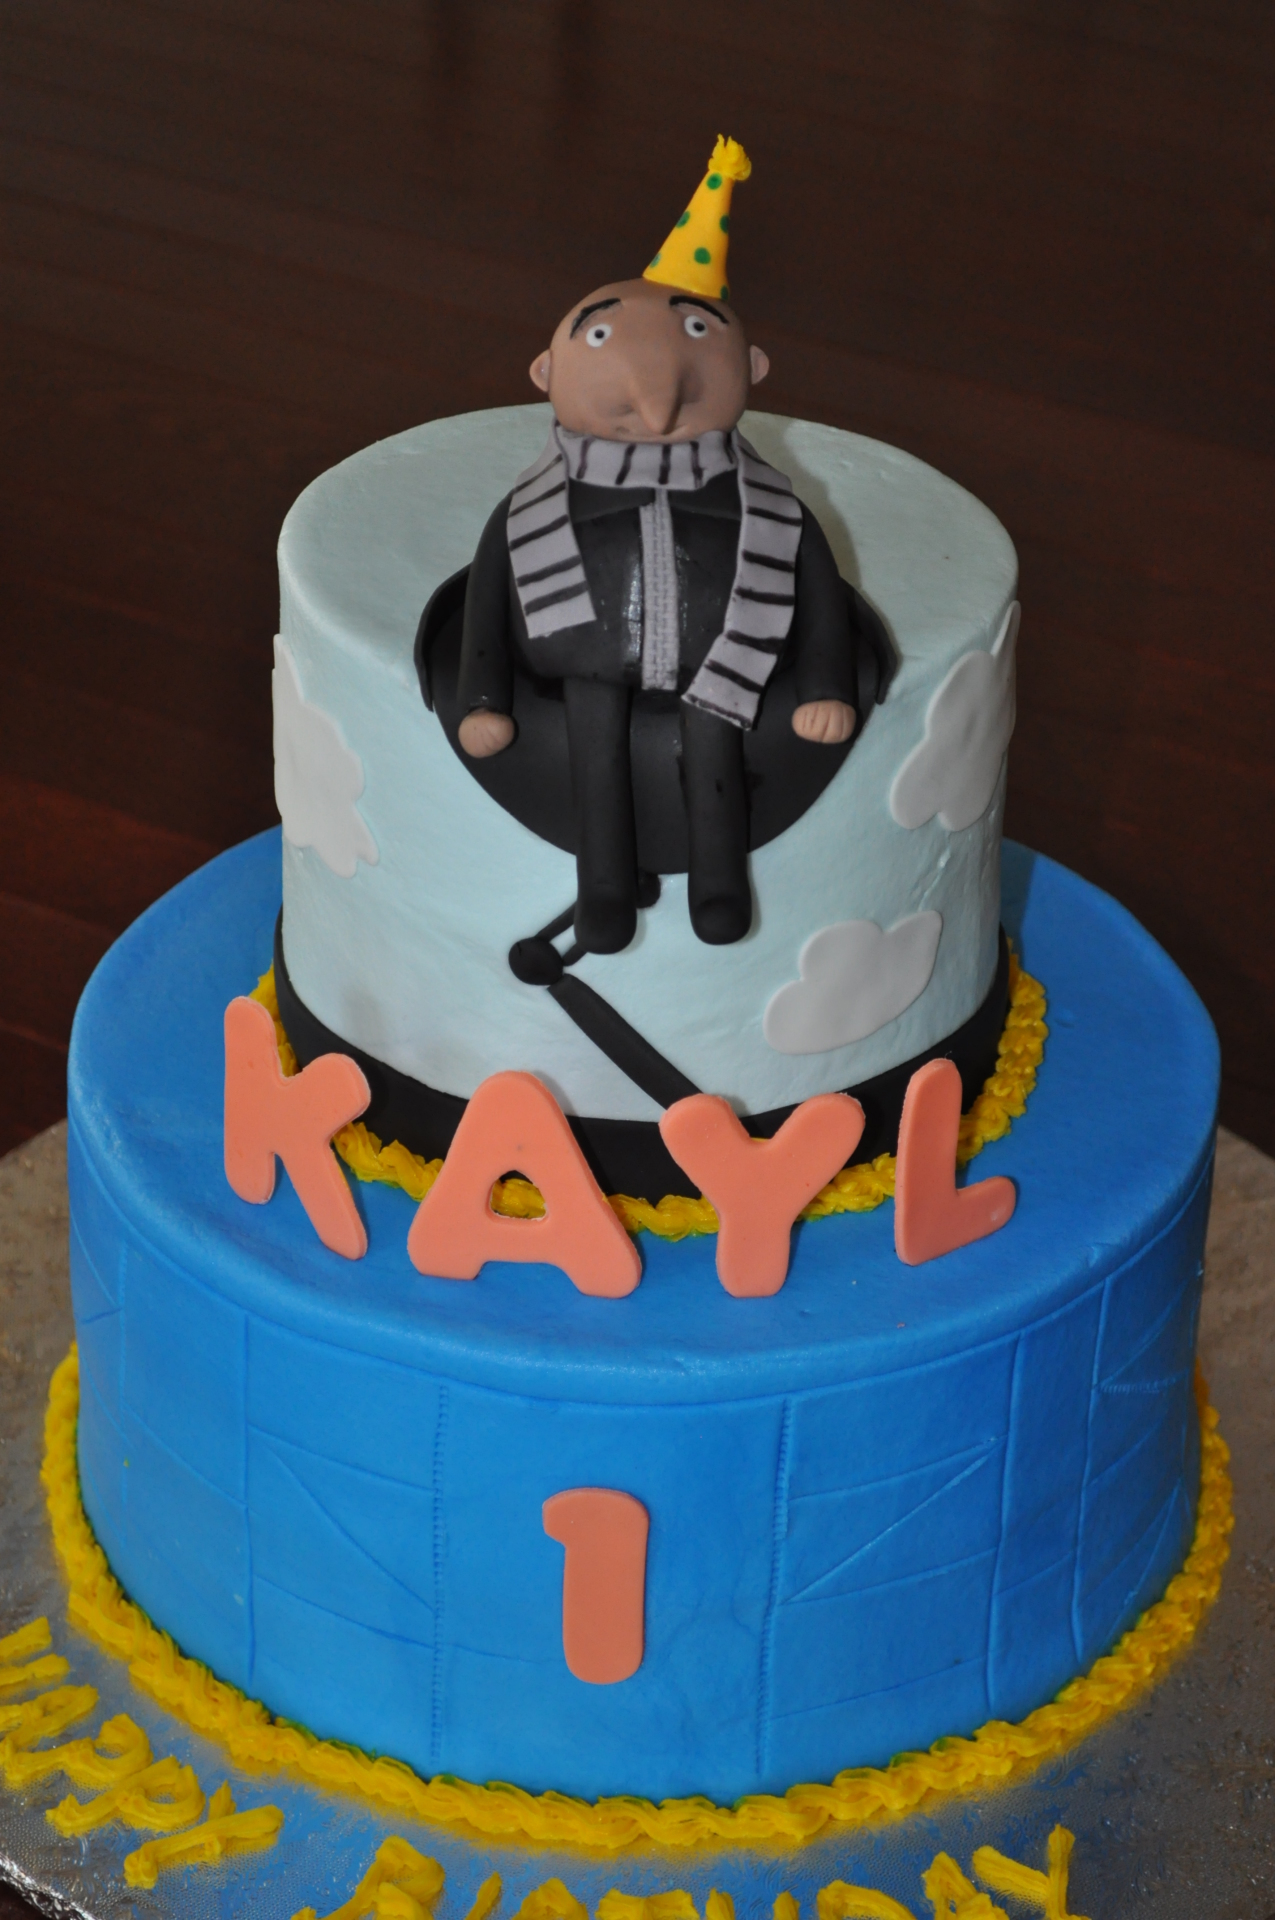 Gru -Despicable me theme cake